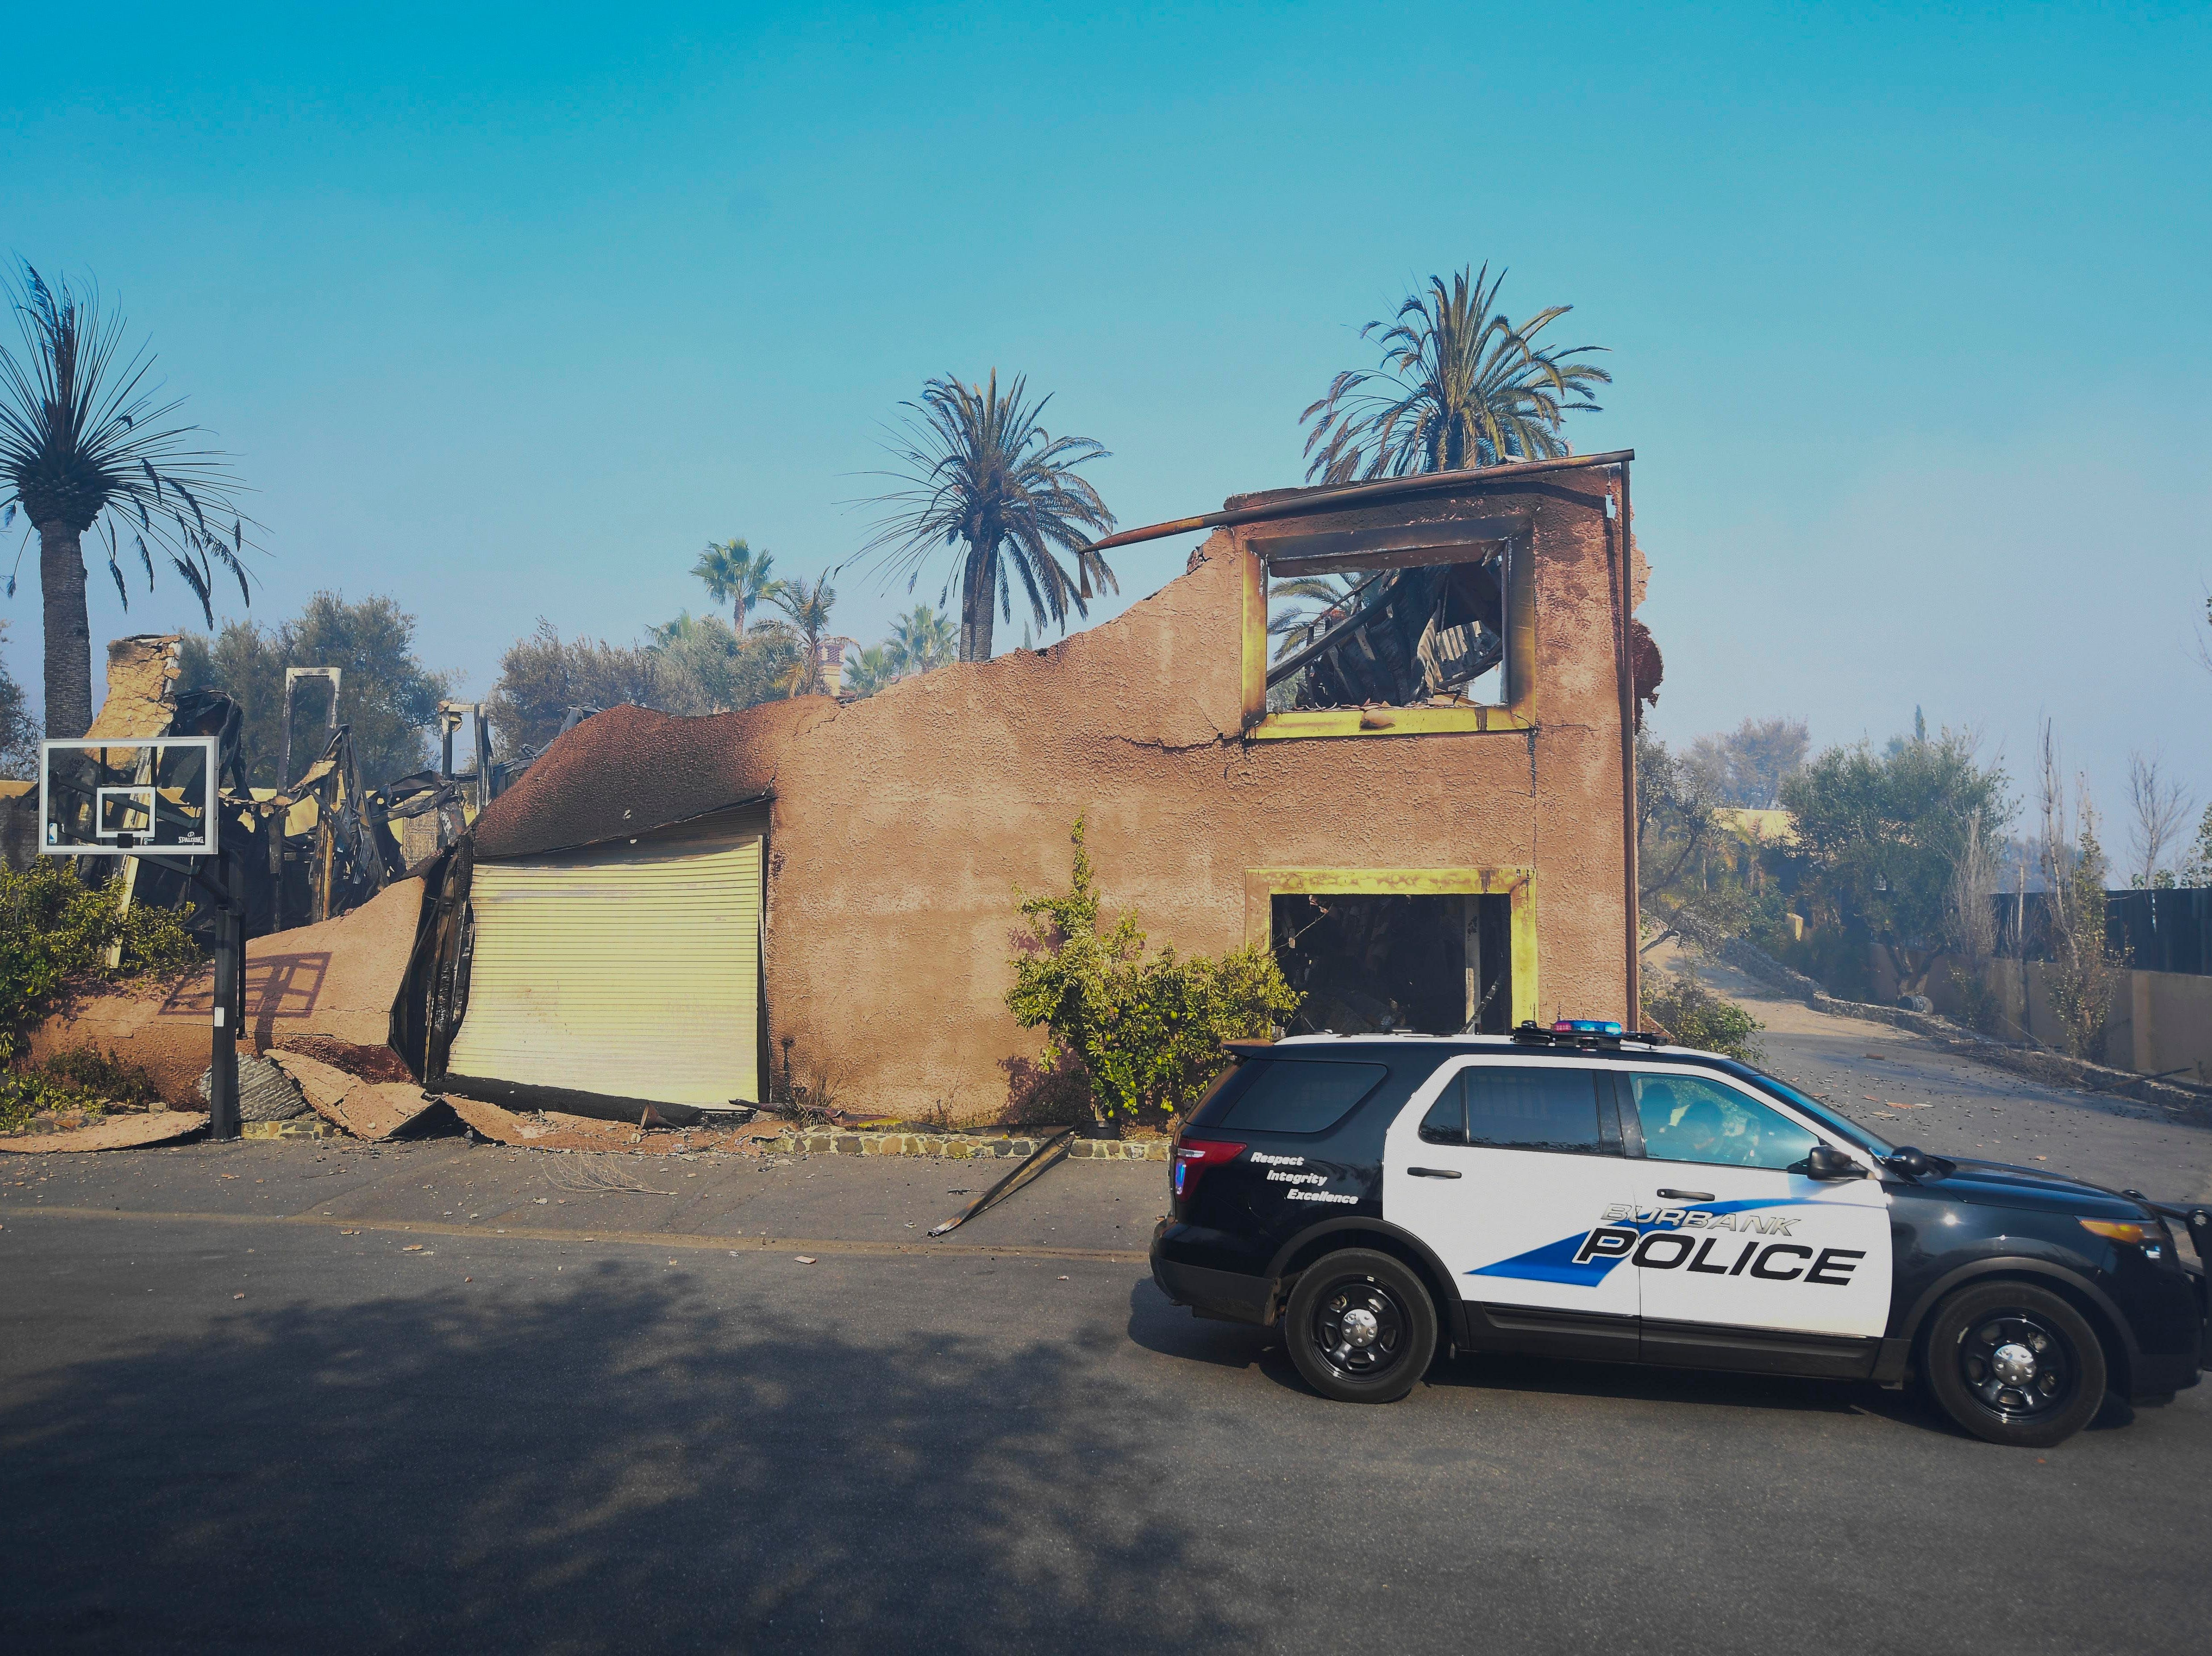 """A police cruiser patrols the neighborhood where the ABC TV series """"The Bachelor"""" is filmed in Beverly Hills, on Nov 10, 2018. The house where series is produced is still standing."""